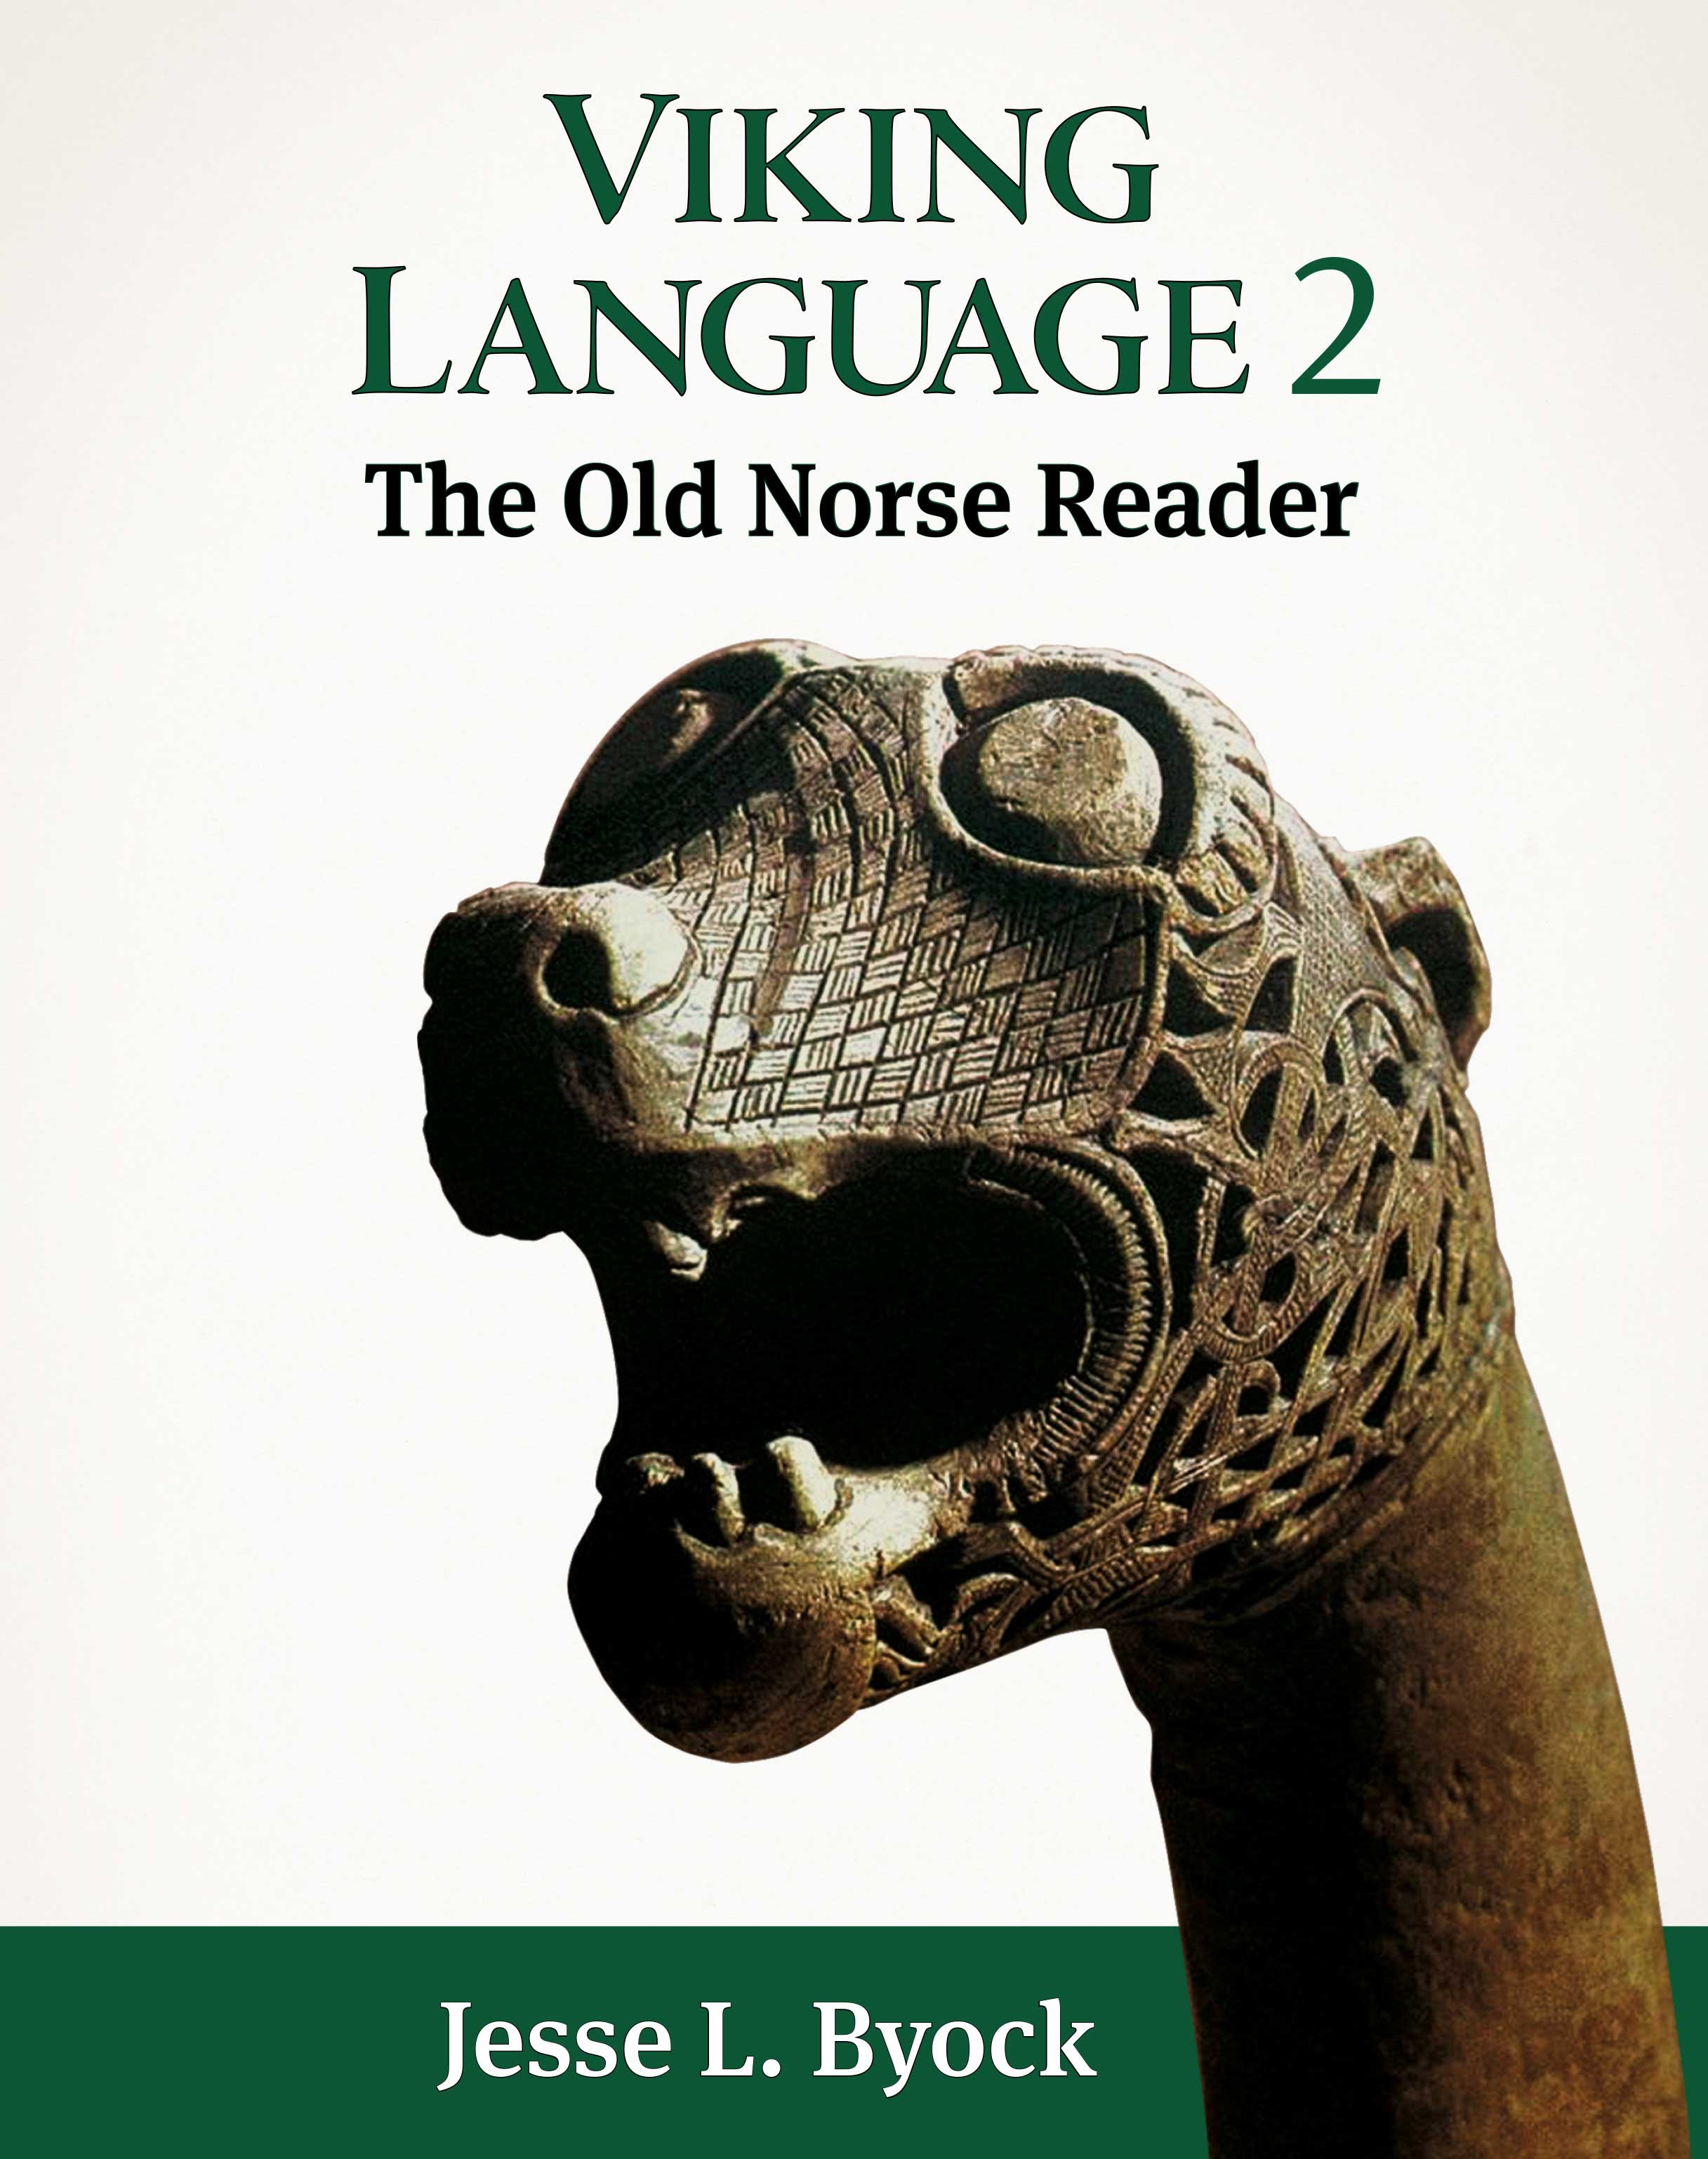 https://www.amazon.com/Viking-Language-Old-Norse-Reader/dp/1481175262/ref=sr_1_1?ie=UTF8&qid=1511089799&sr=8-1&keywords=viking+language+2